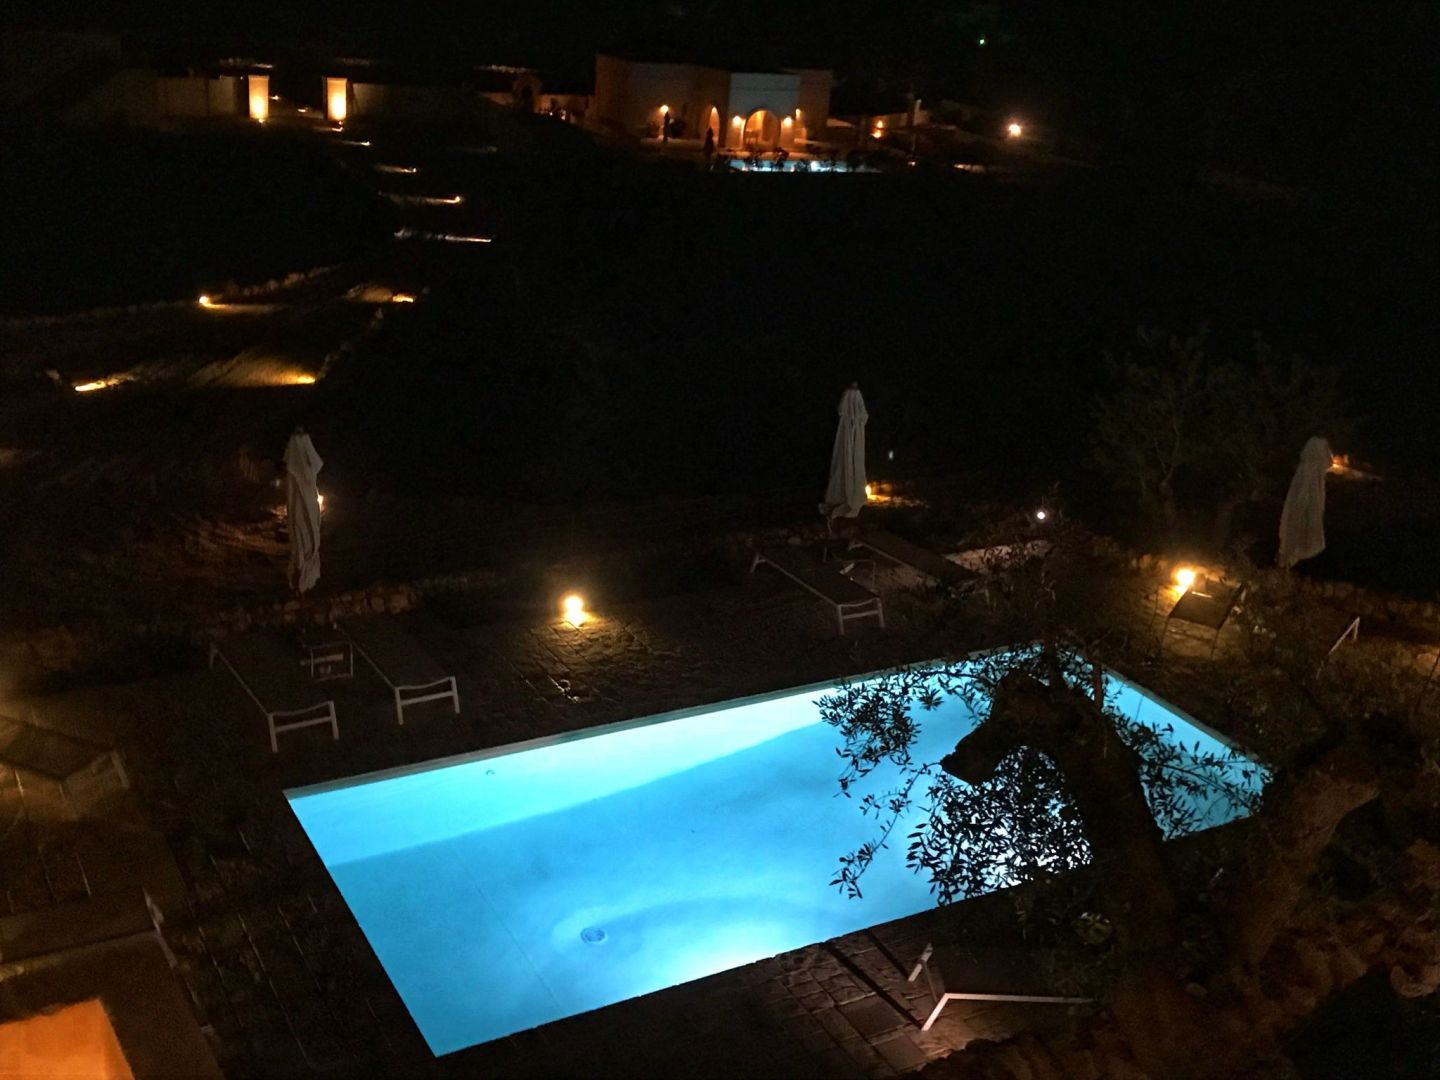 Corte dei Massapi villa pool view at night